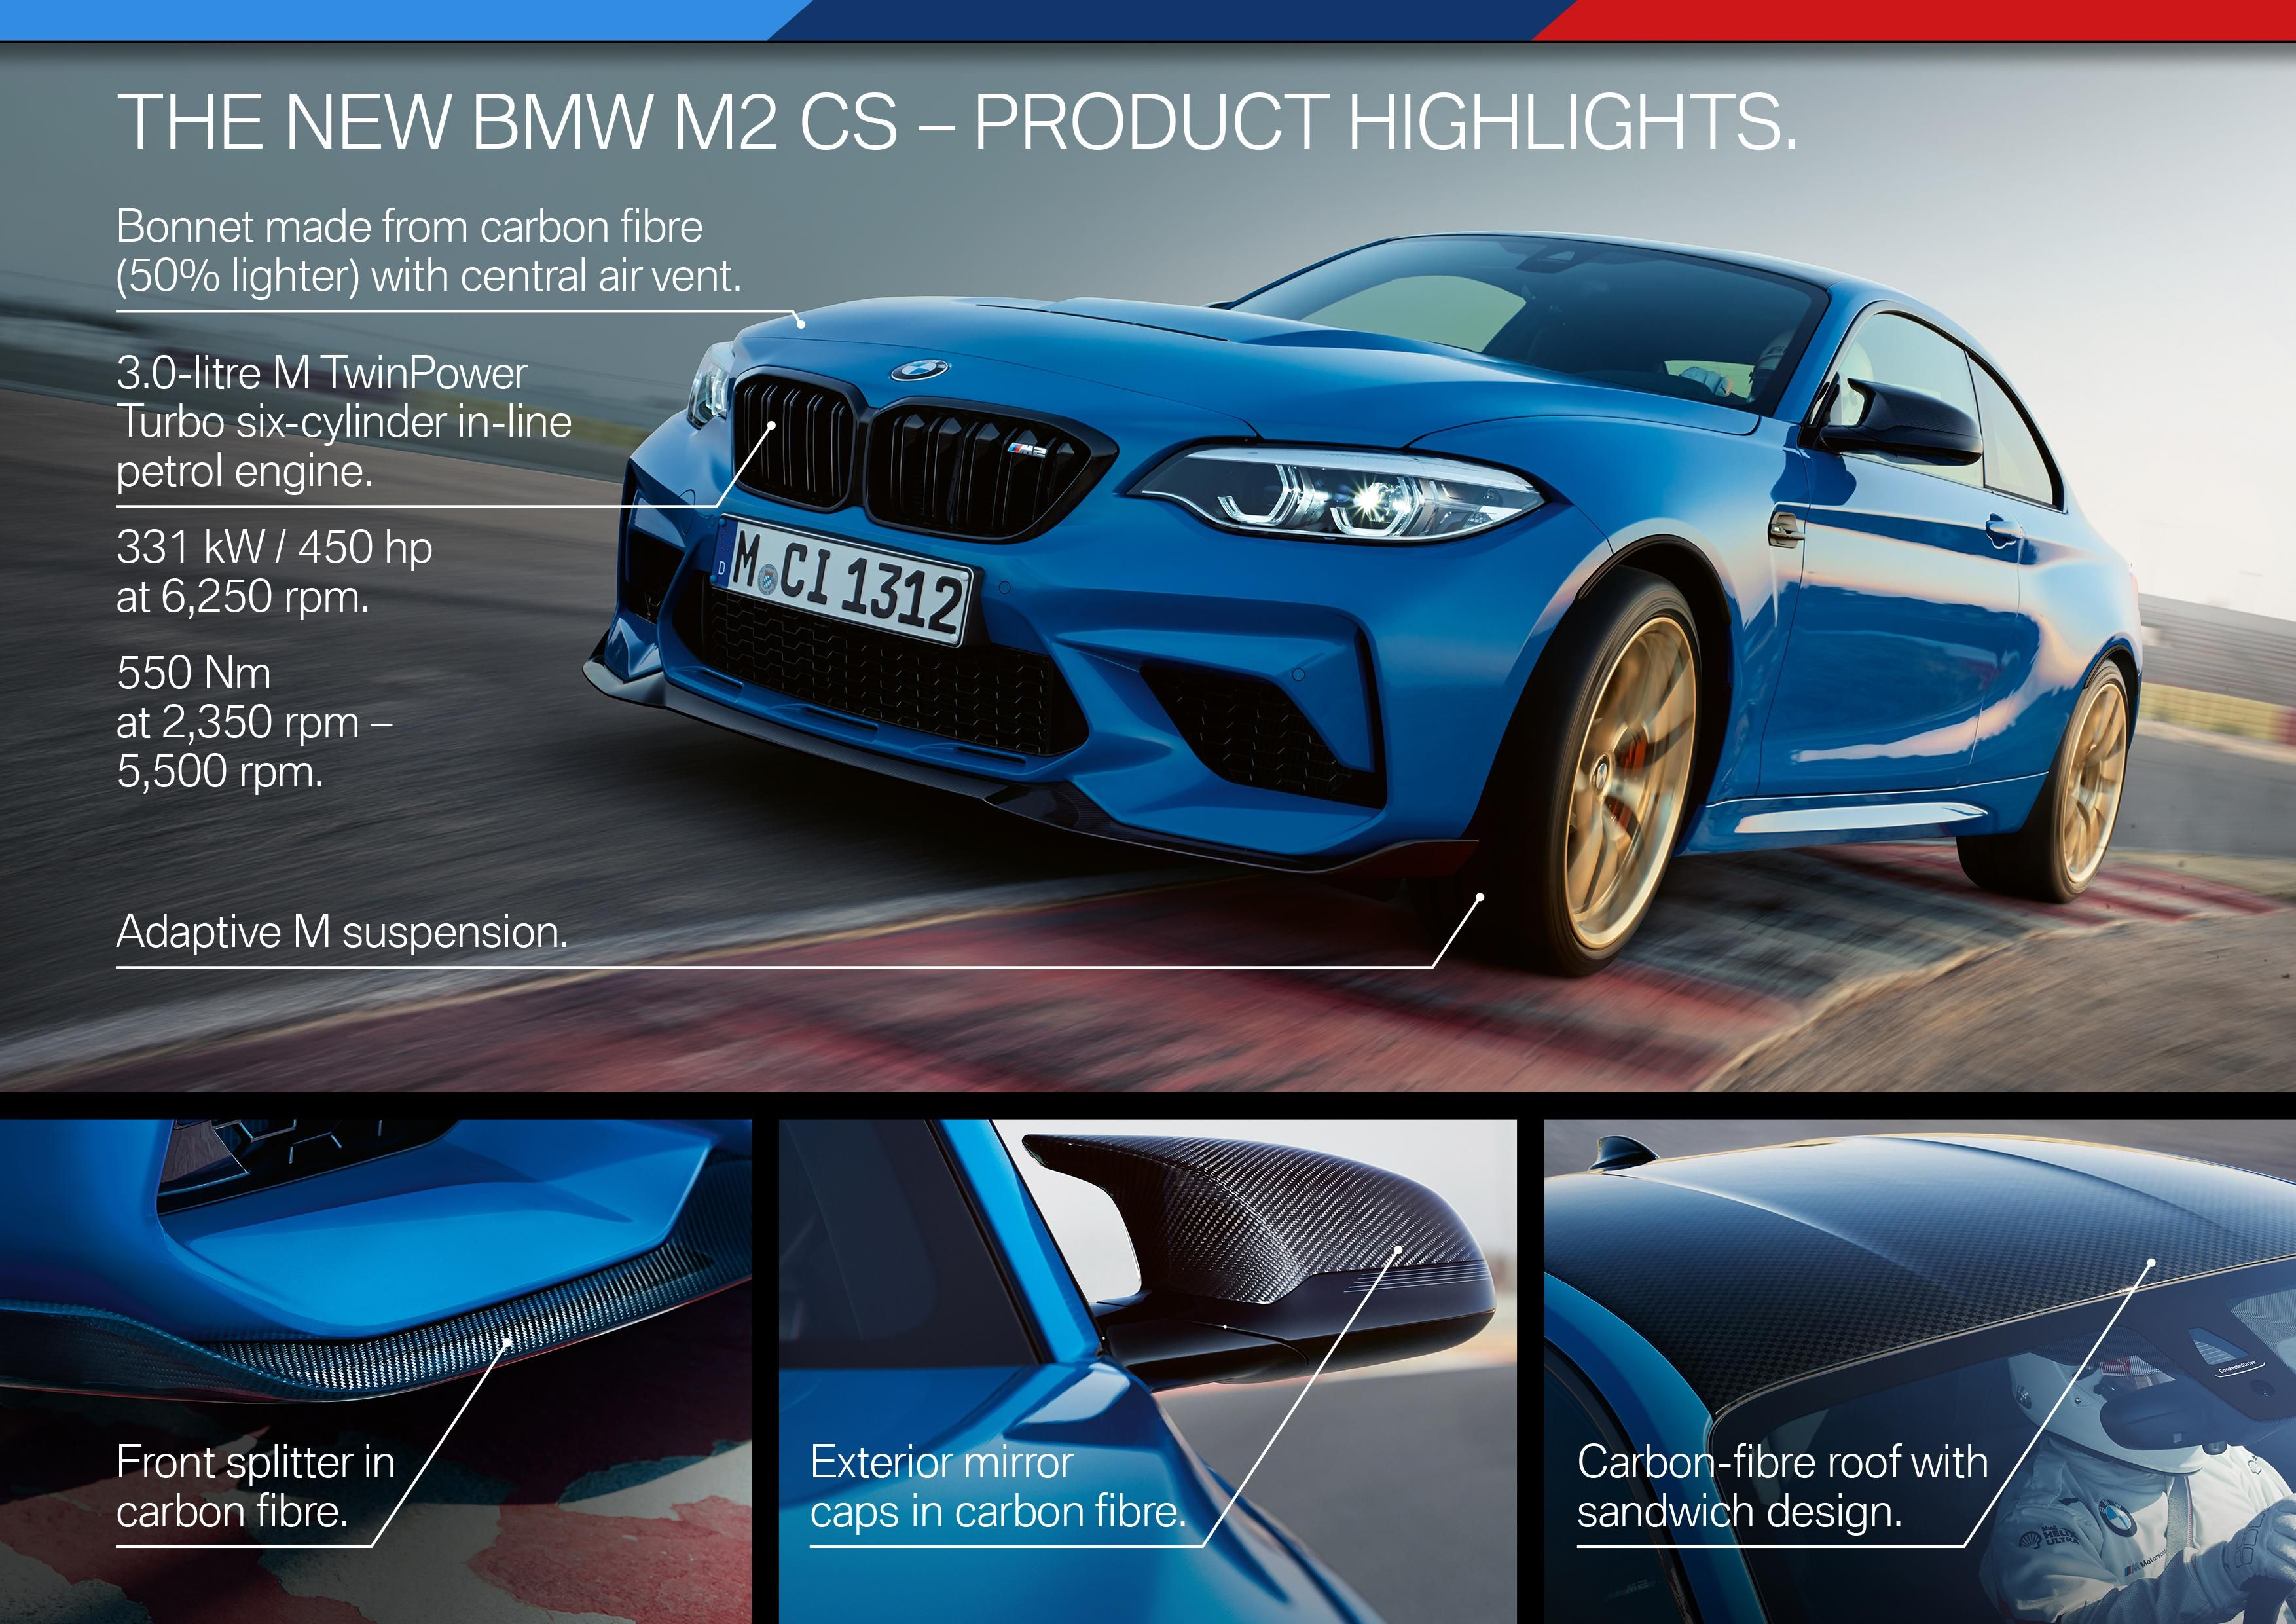 2020 Bmw M2 Cs Changes Compared To The M2 Competition Bmw Bmw M2 Career Development